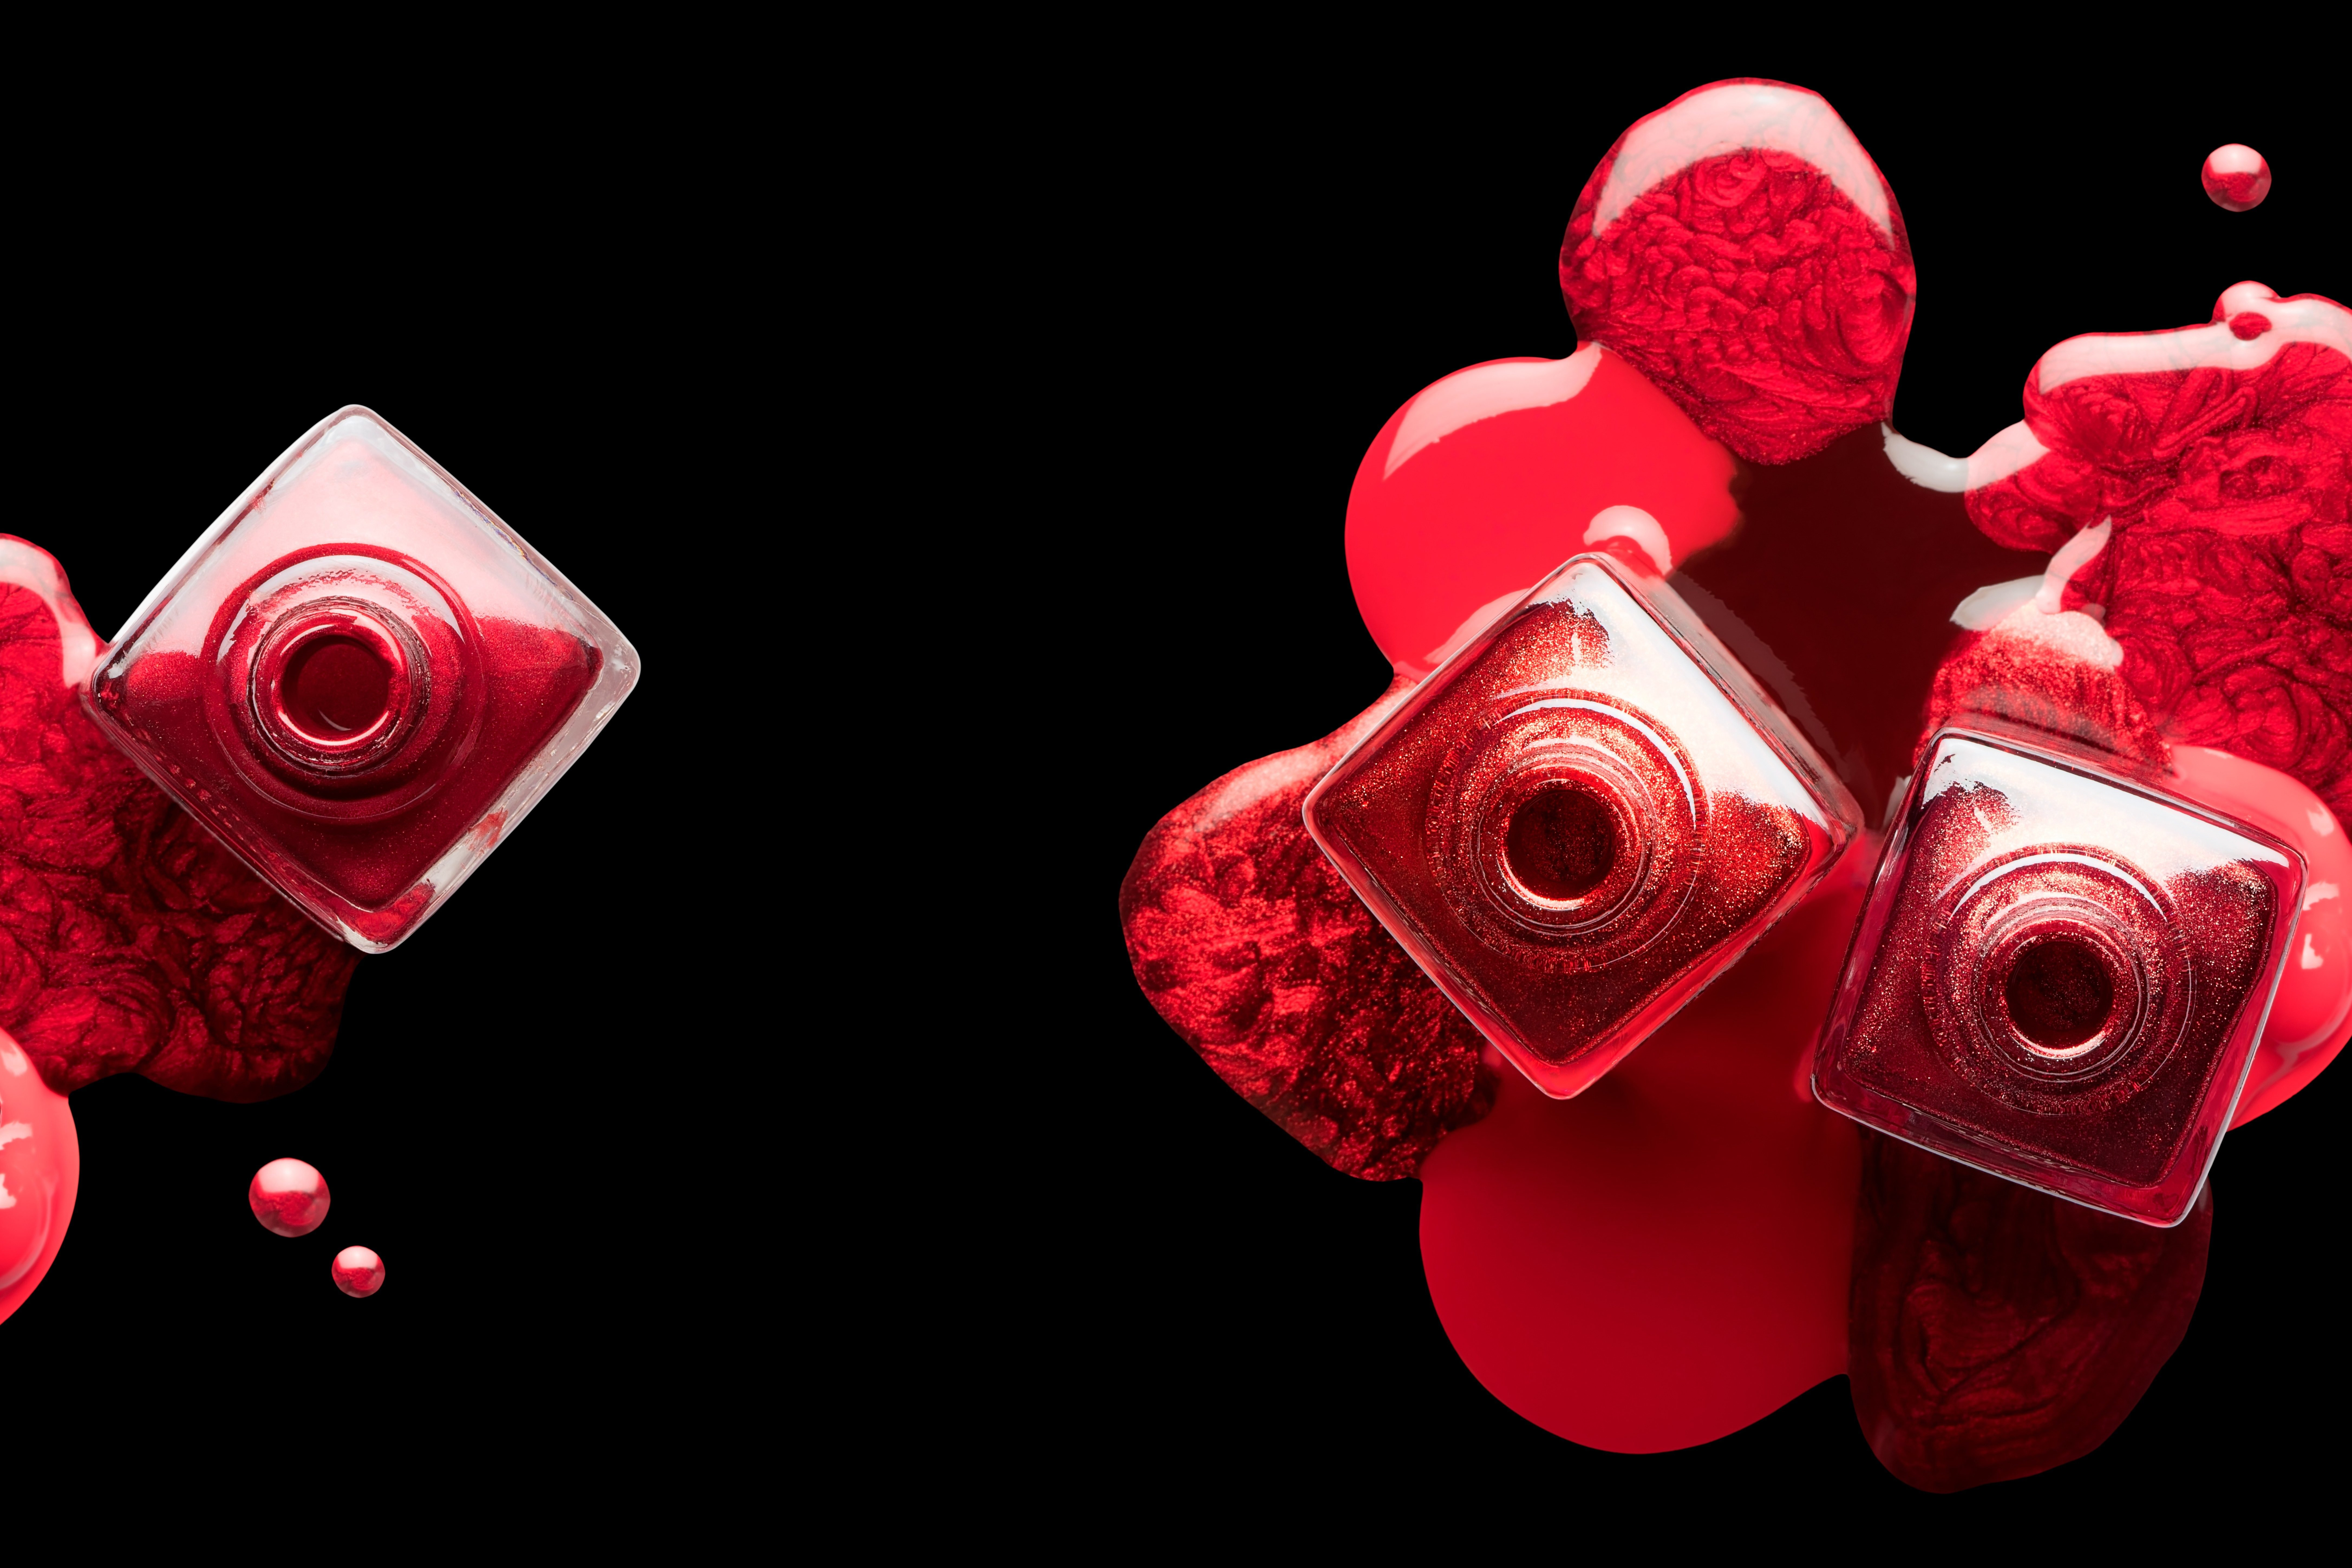 Nail art and manicure concept with metallic red lacquer or nail polish artfully spilled beneath three open bottles. Isolated on a black background, top view with copy space